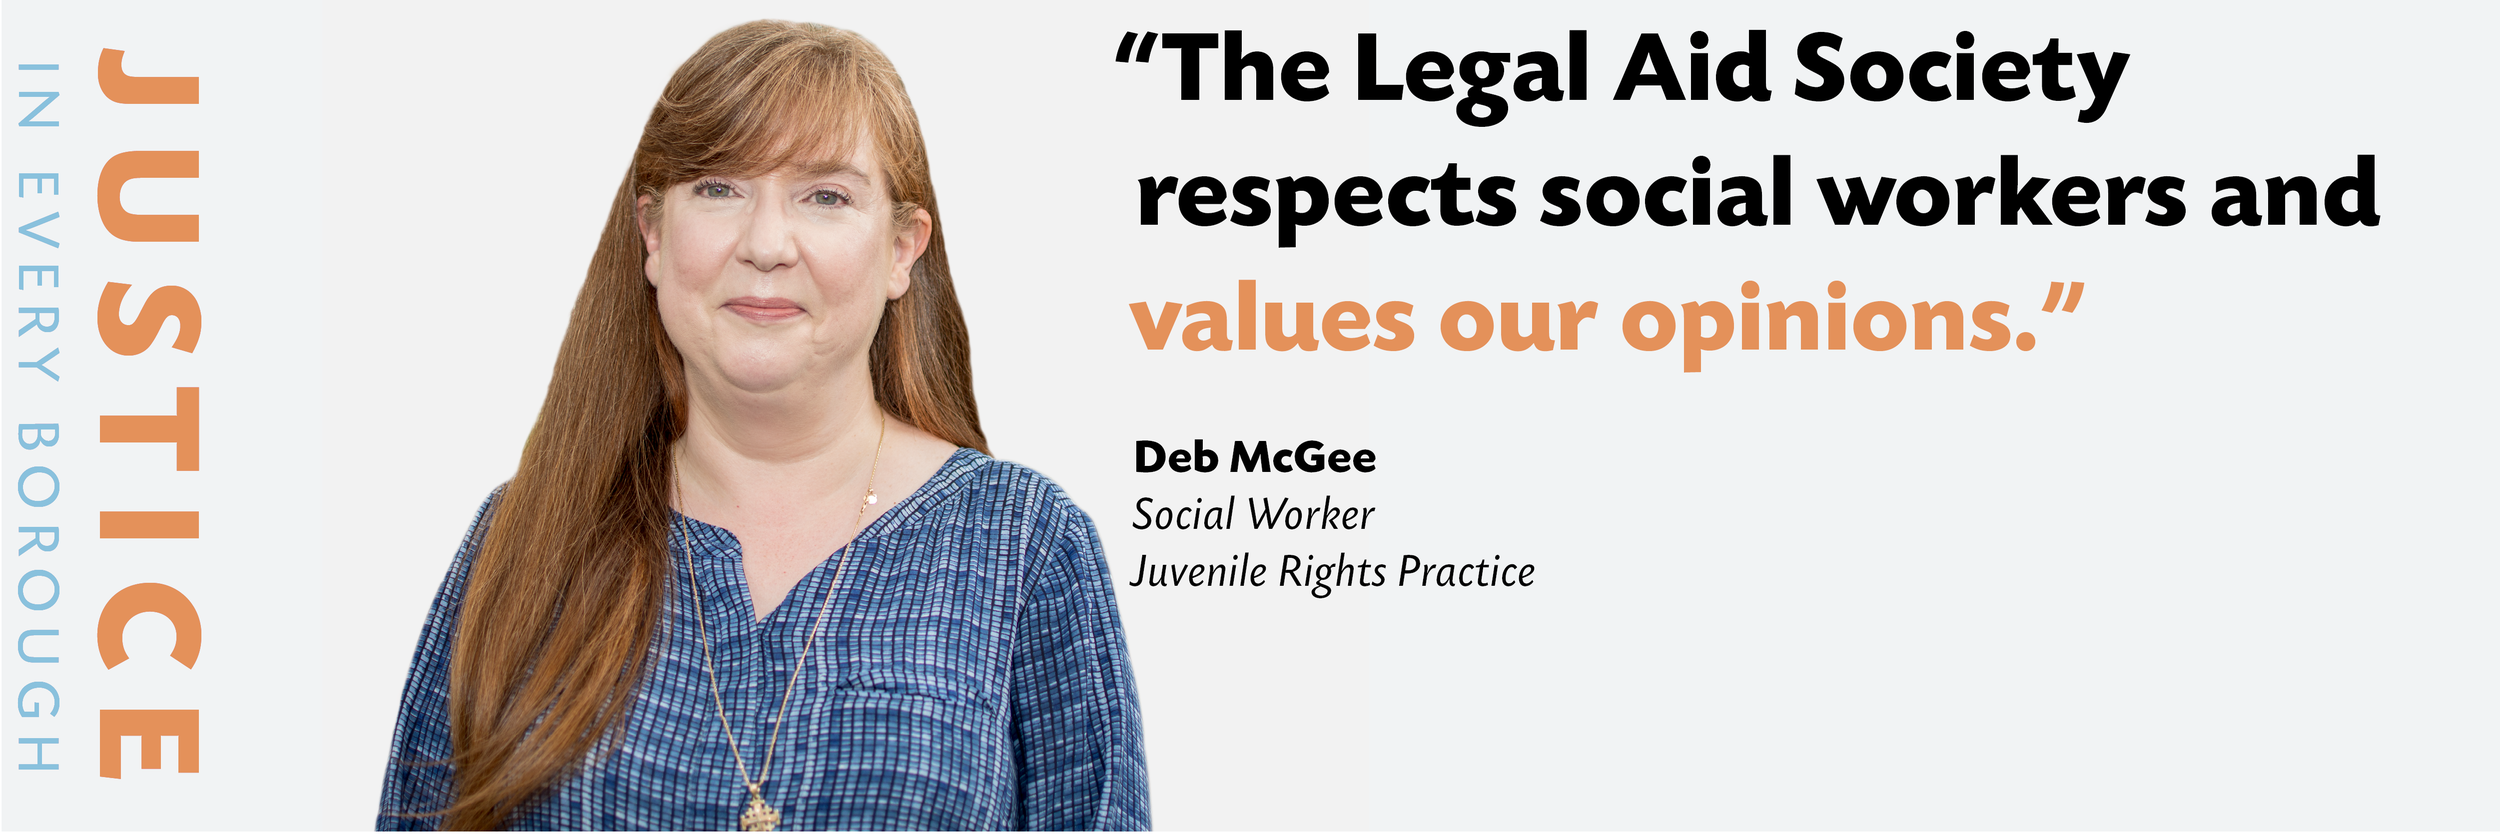 Deb McGee page banner.png